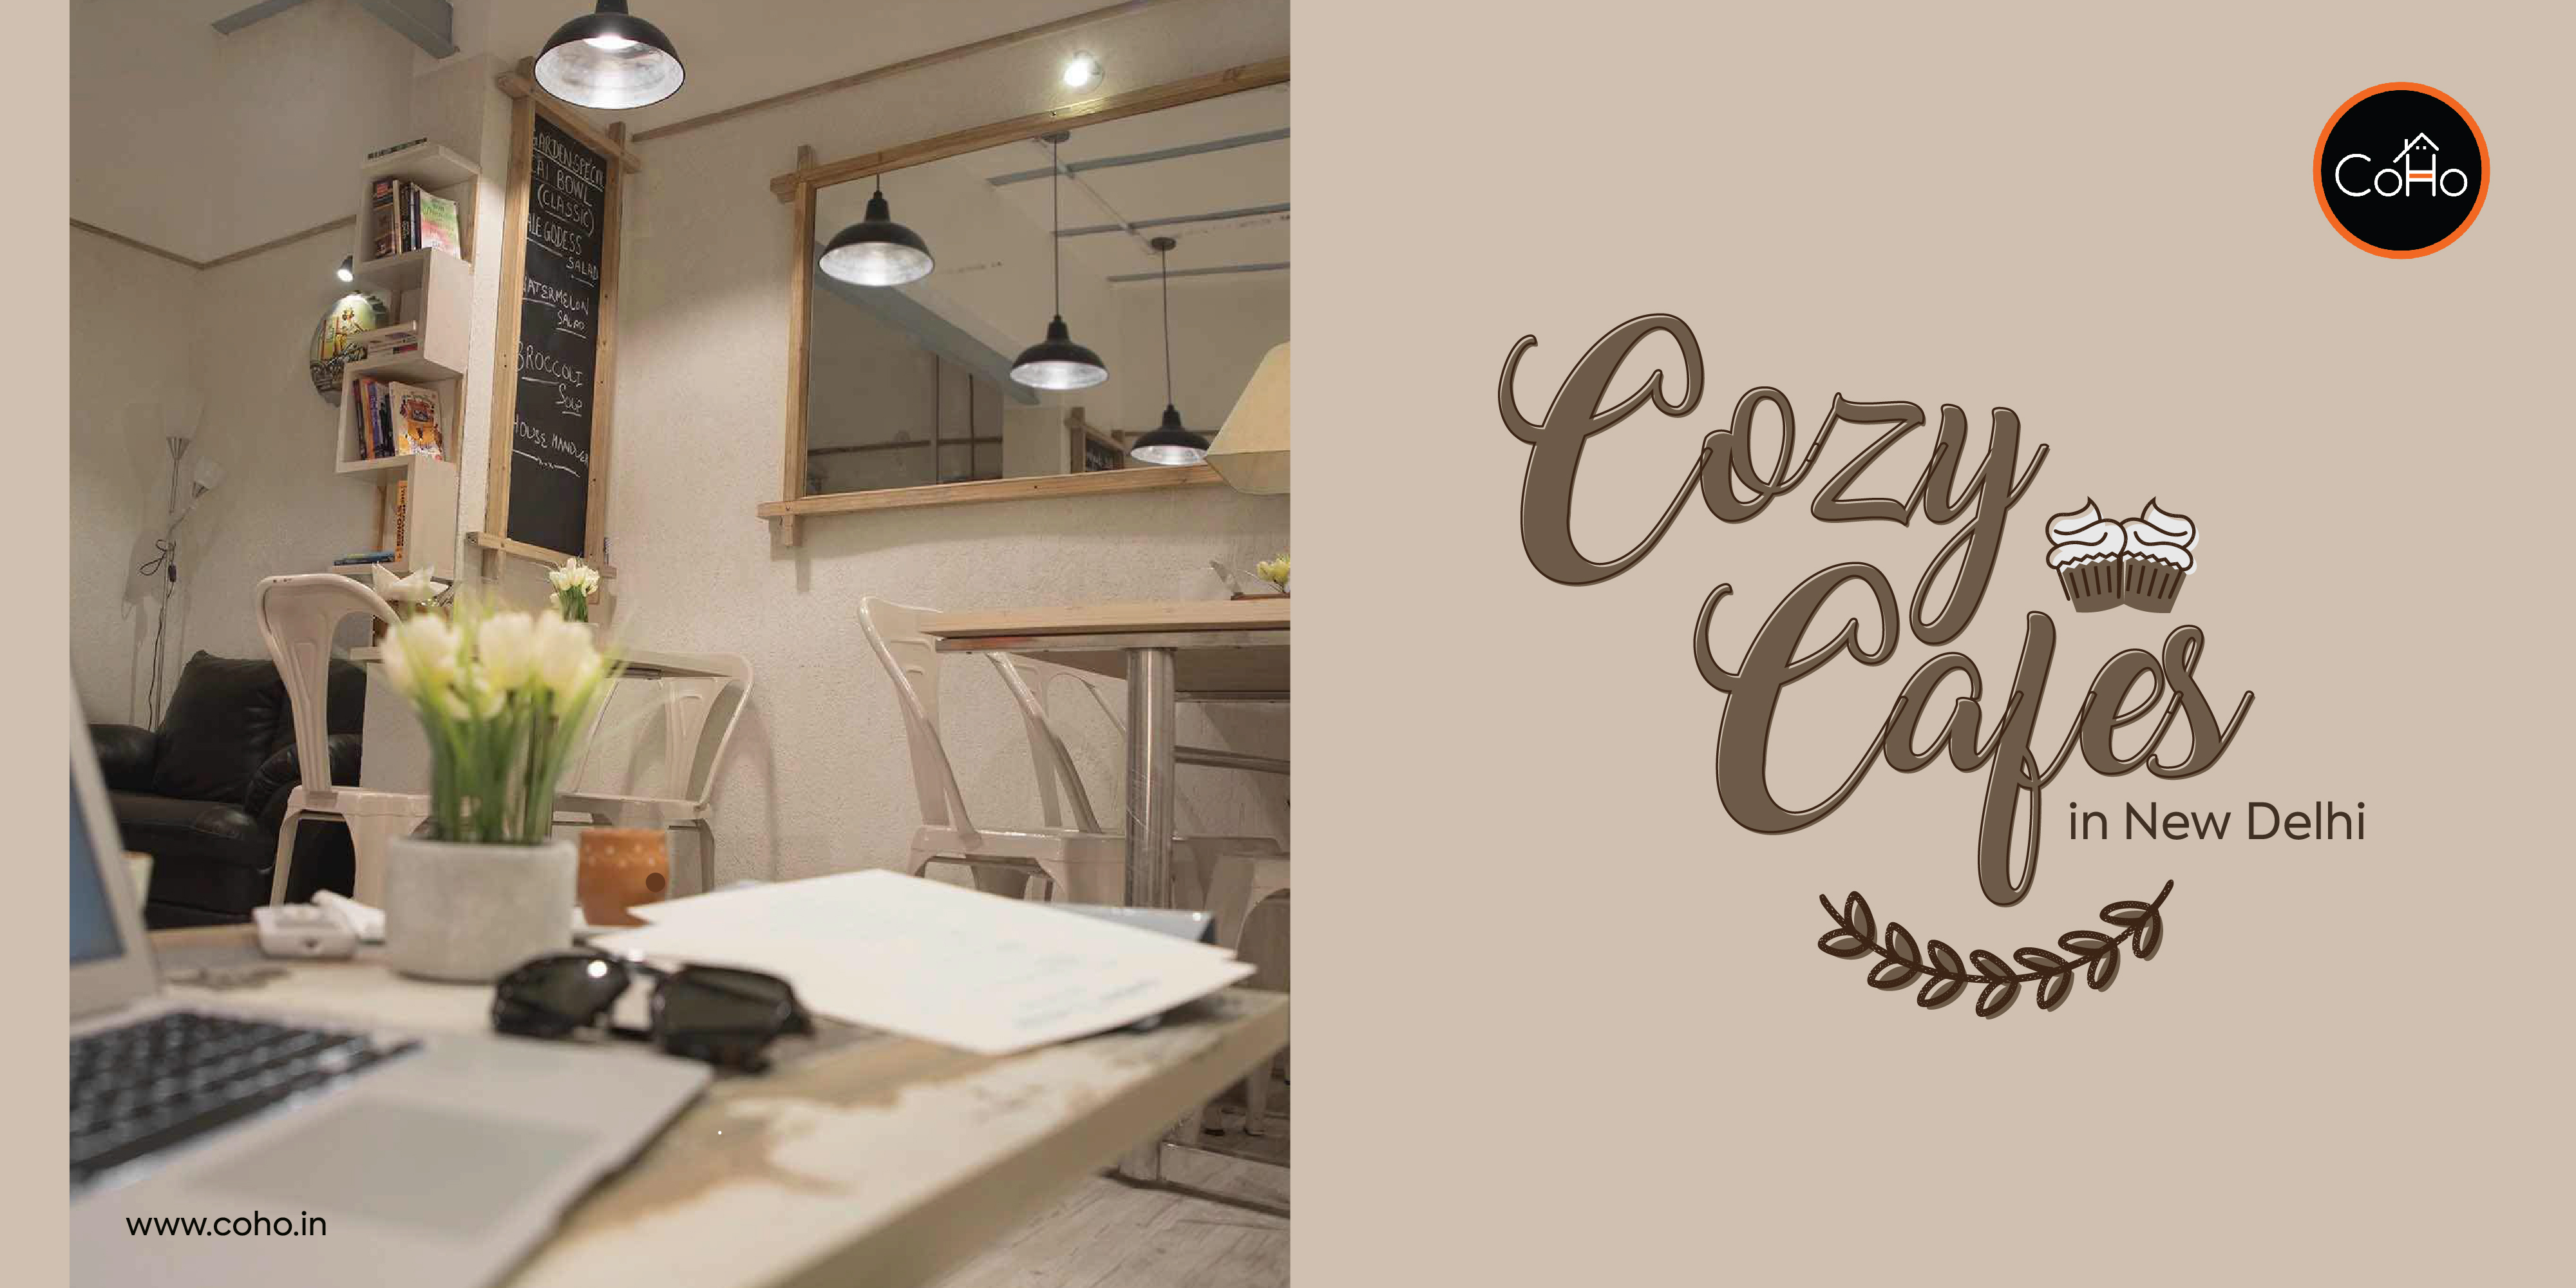 Cozy Cafes in to Lookout for in New Delhi!